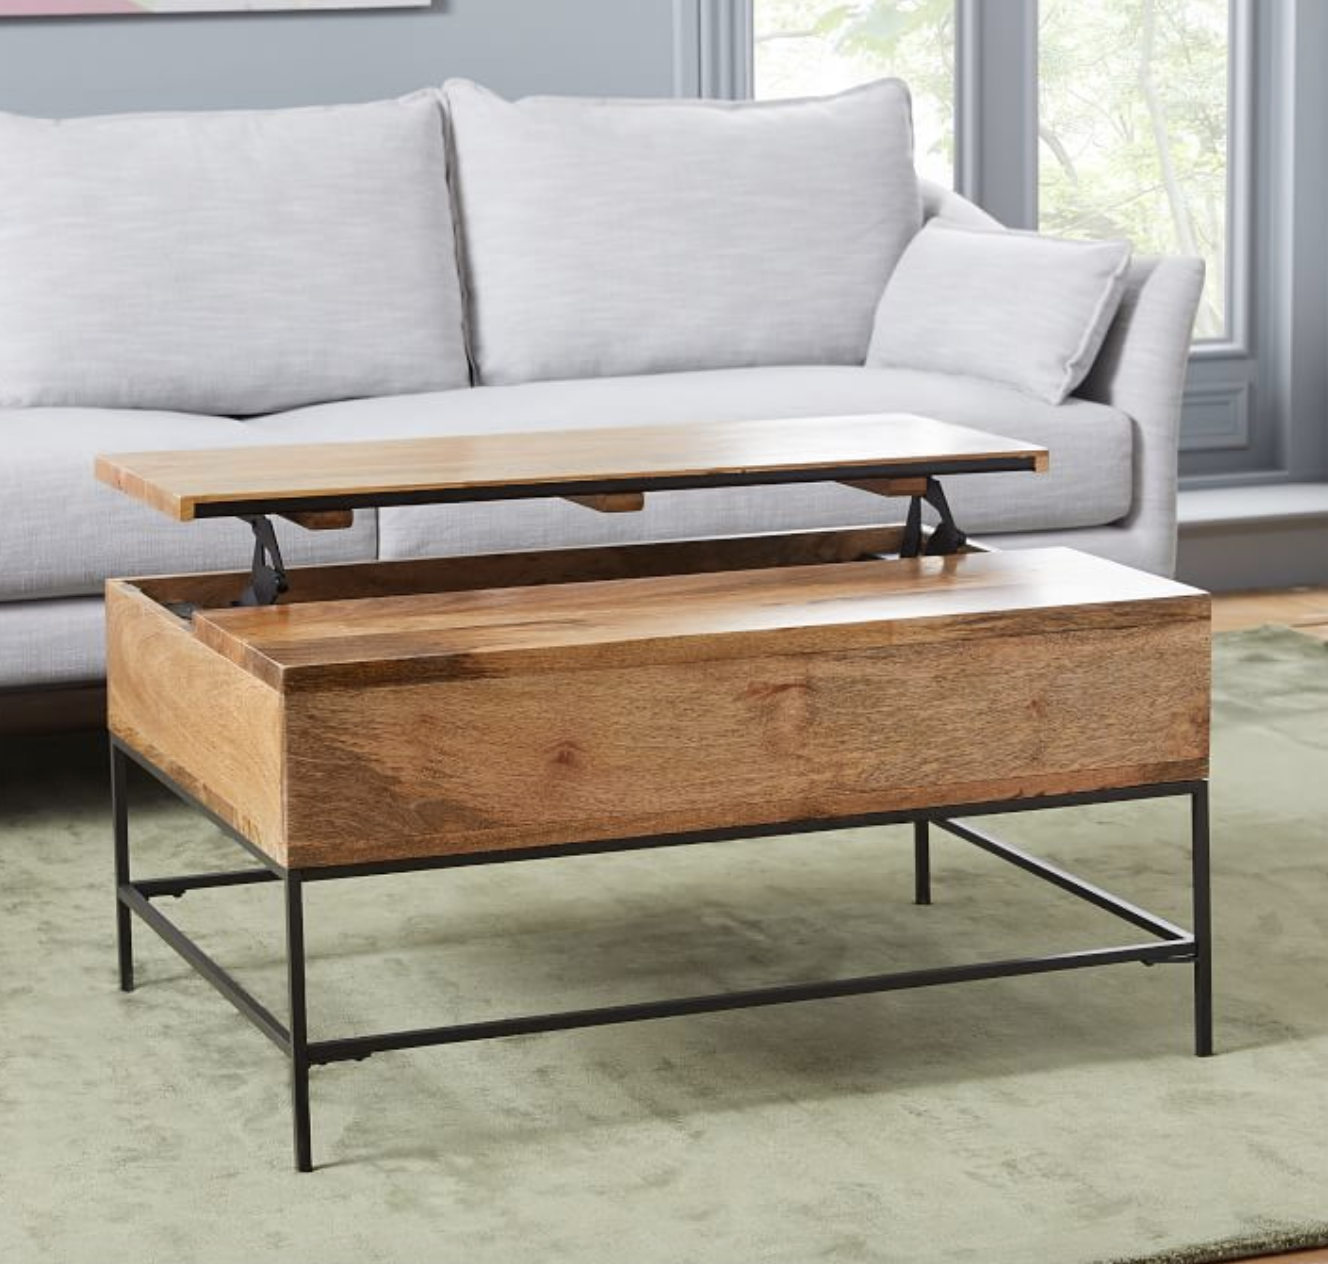 Coffee table with lifting lid